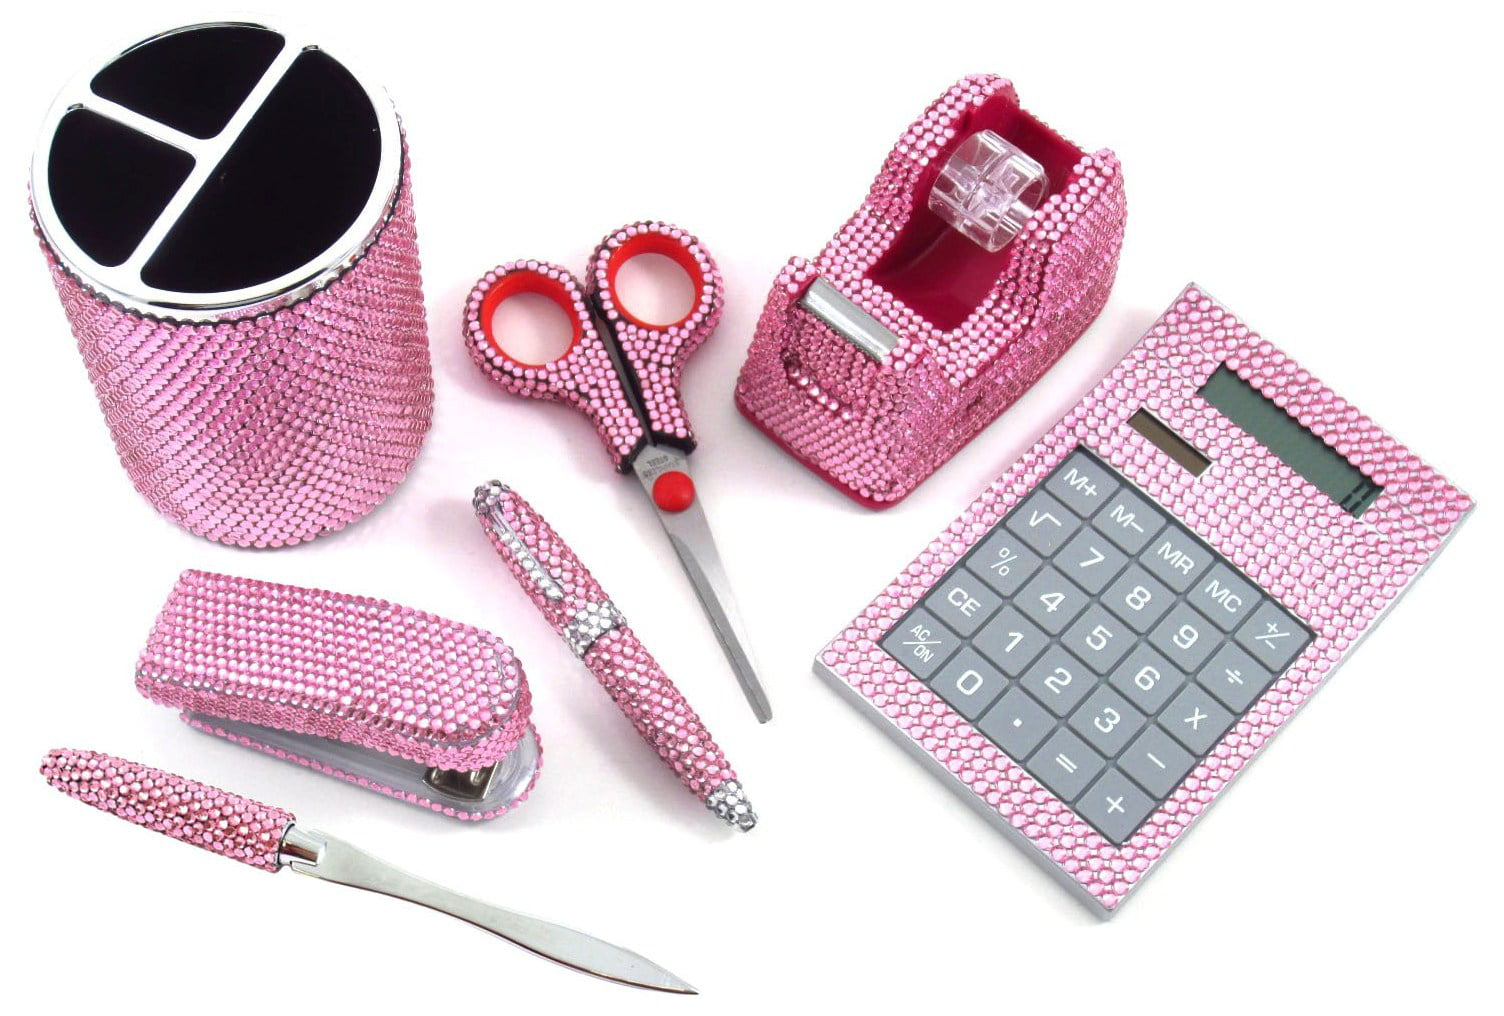 7 Piece Light Pink Crystal Office Supply Set Pen Scissors Calc Dispenser Stapler Com